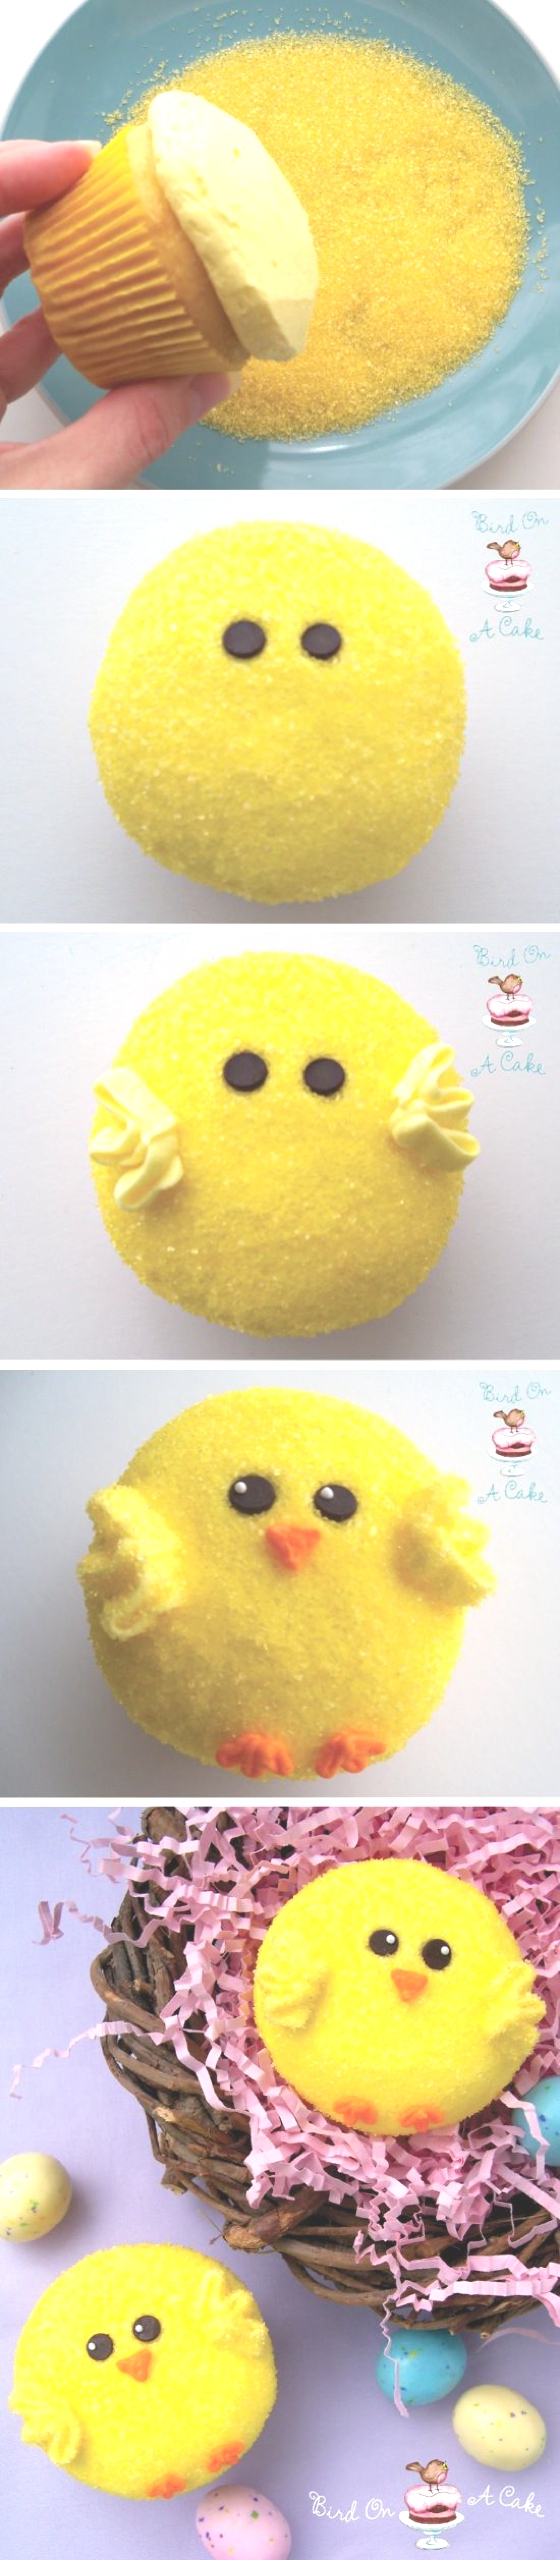 easter-cupcakes-easy-instructions